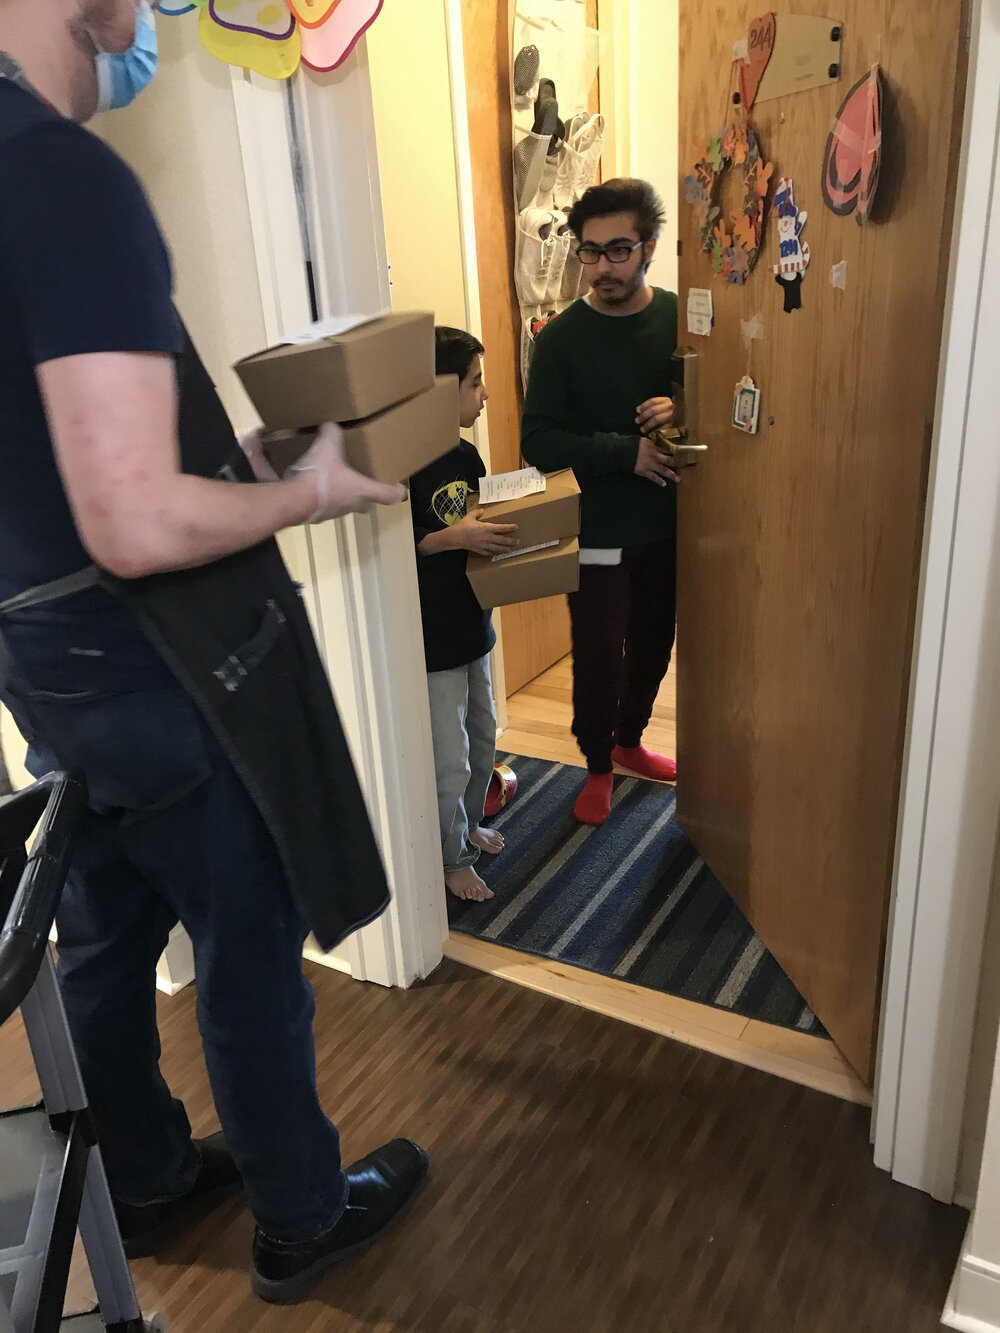 Meal delivery at the house